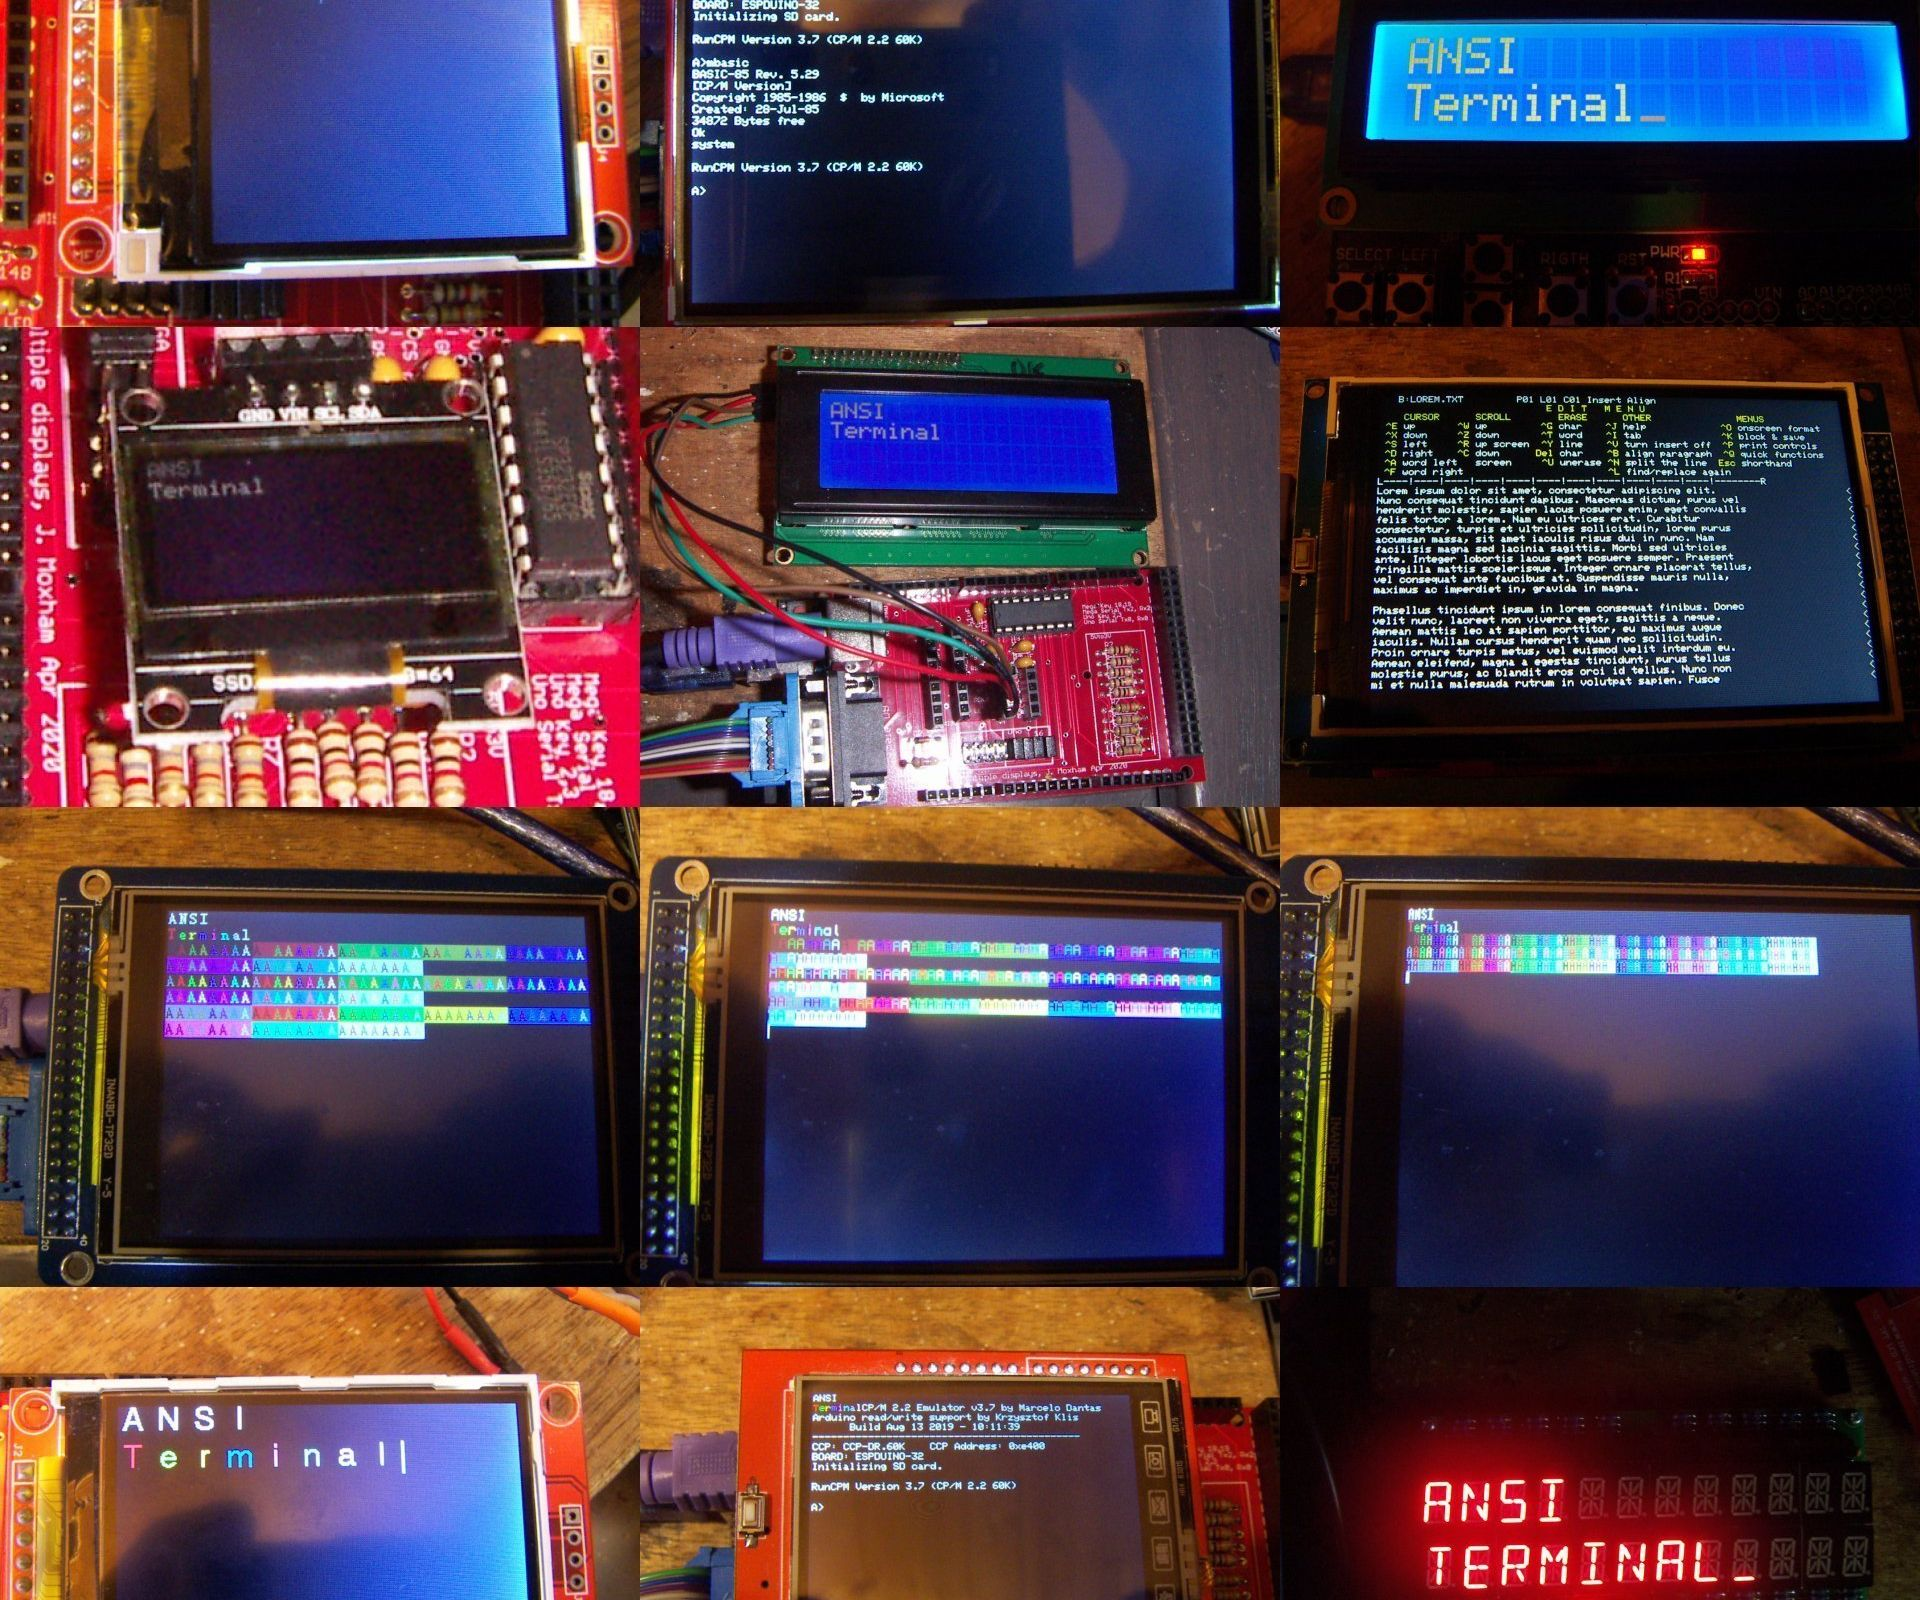 A Collection of ANSI Terminals